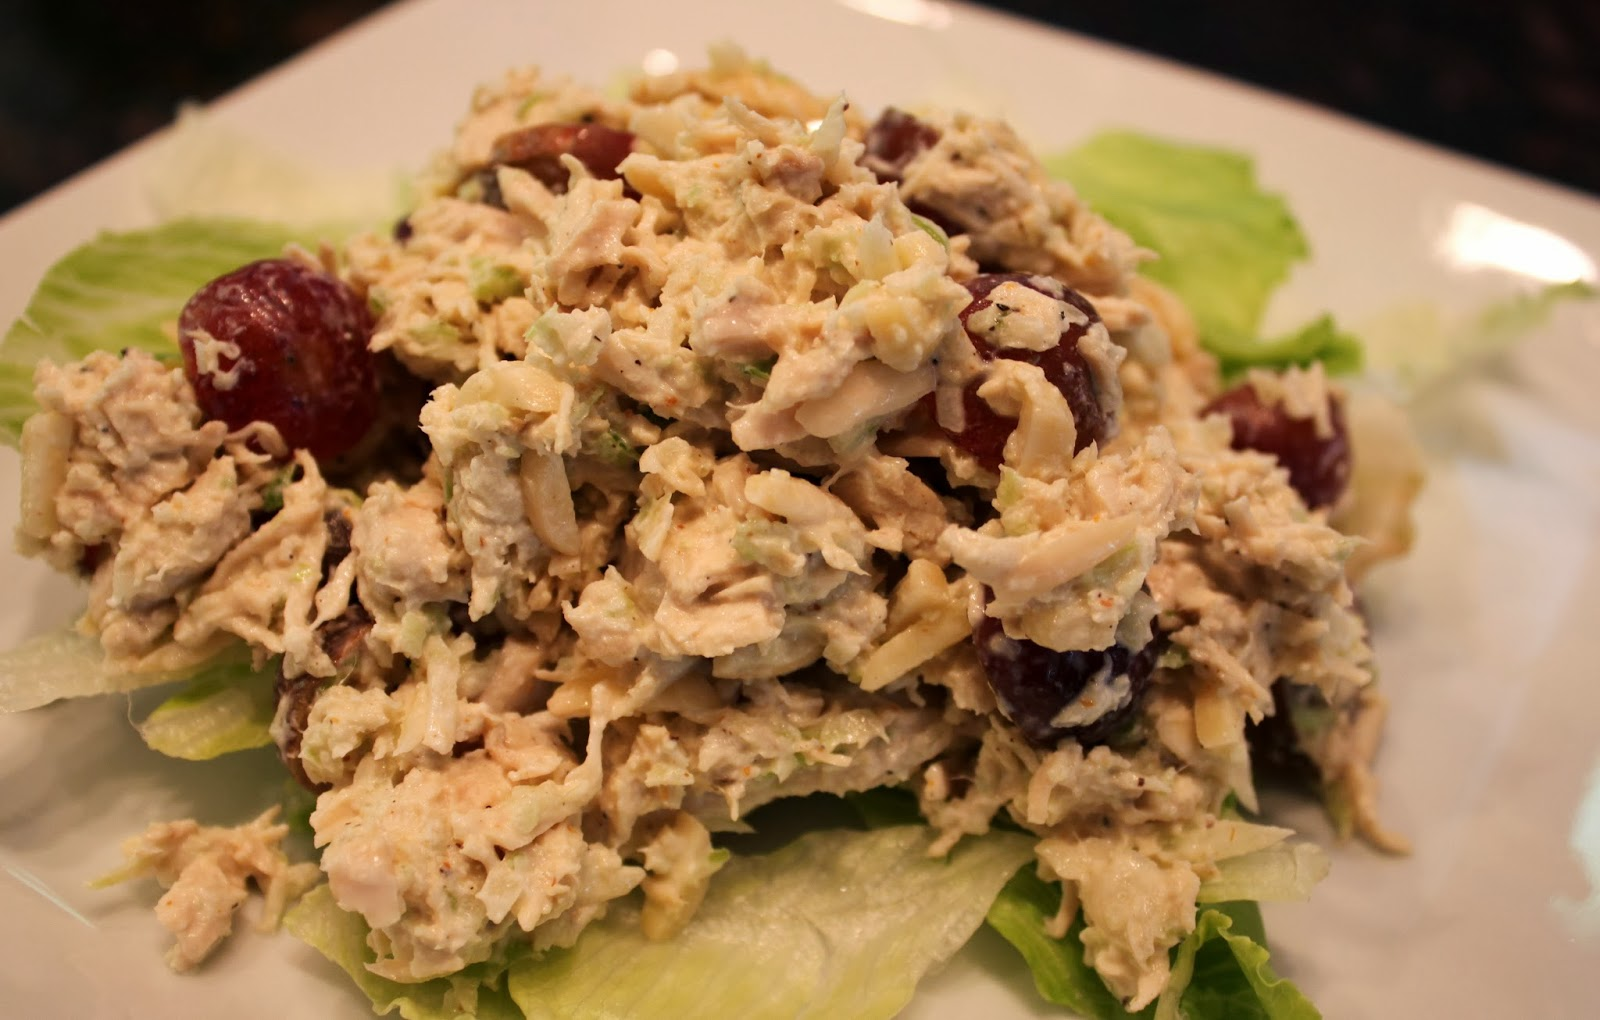 Paleo Chicken Salad with Grapes & Almonds